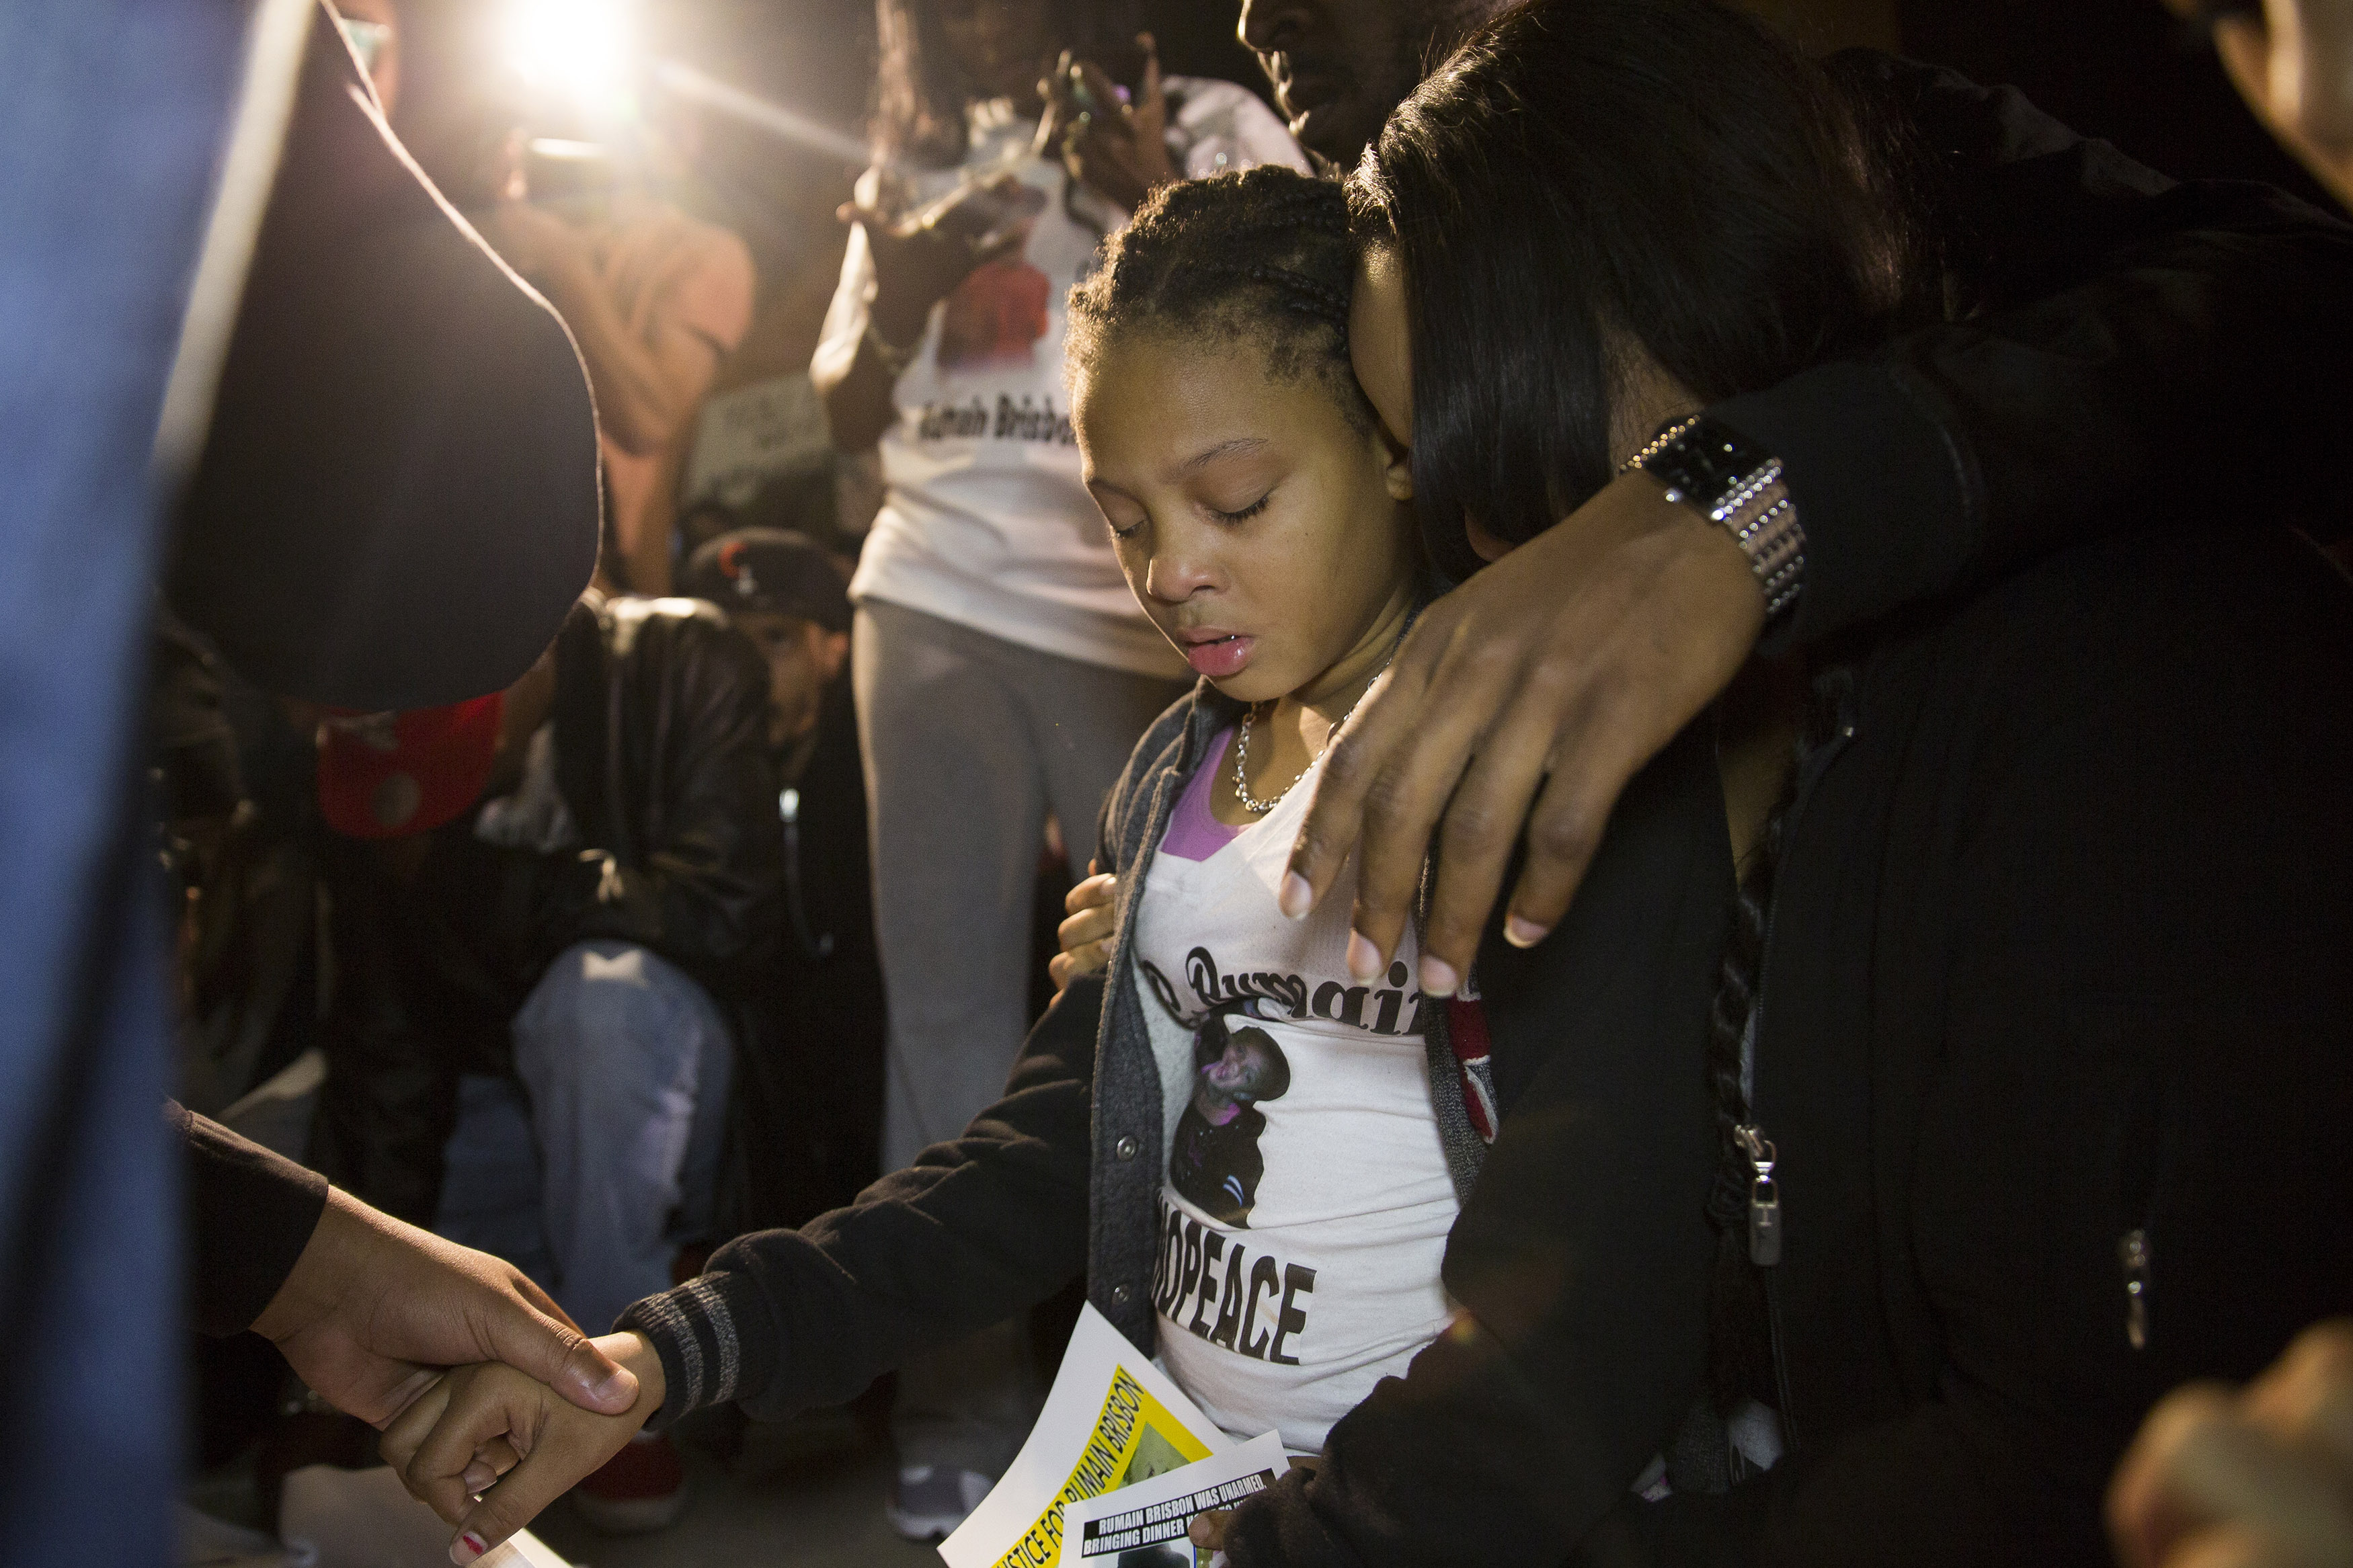 The daughter of Rumain Brisbon (L) begins crying as she kneels in prayer at a vigil for her father who was fatally shot by police, in Phoenix, Ariz. on Dec. 8, 2014.